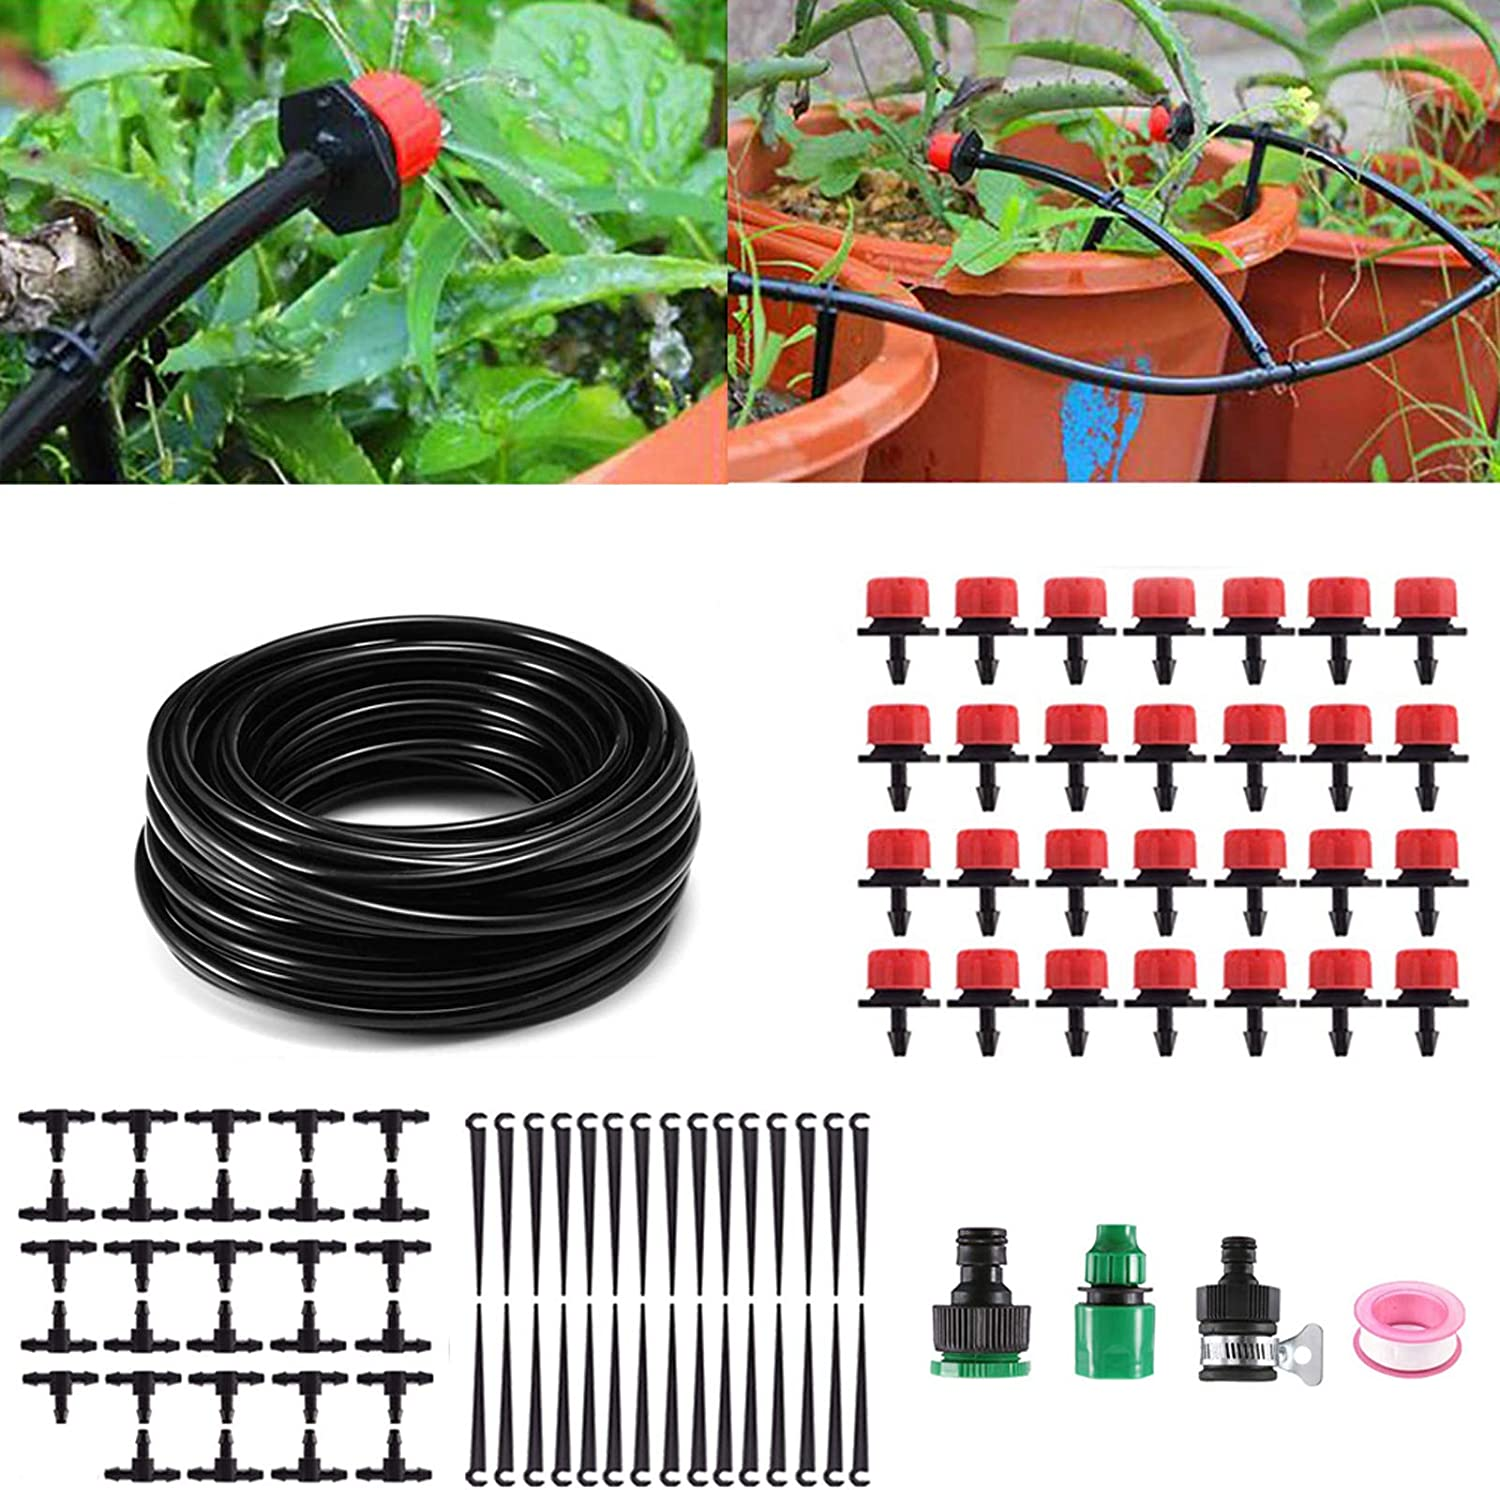 "MSDADA 82ft Watering System for Plants, 1/4"" Blank Distribution Tubing Garden Watering System/DIY Self Plant Garden Hose Watering Kit (red) for Garden Greenhouse, Flower Bed, Patio, Lawn"